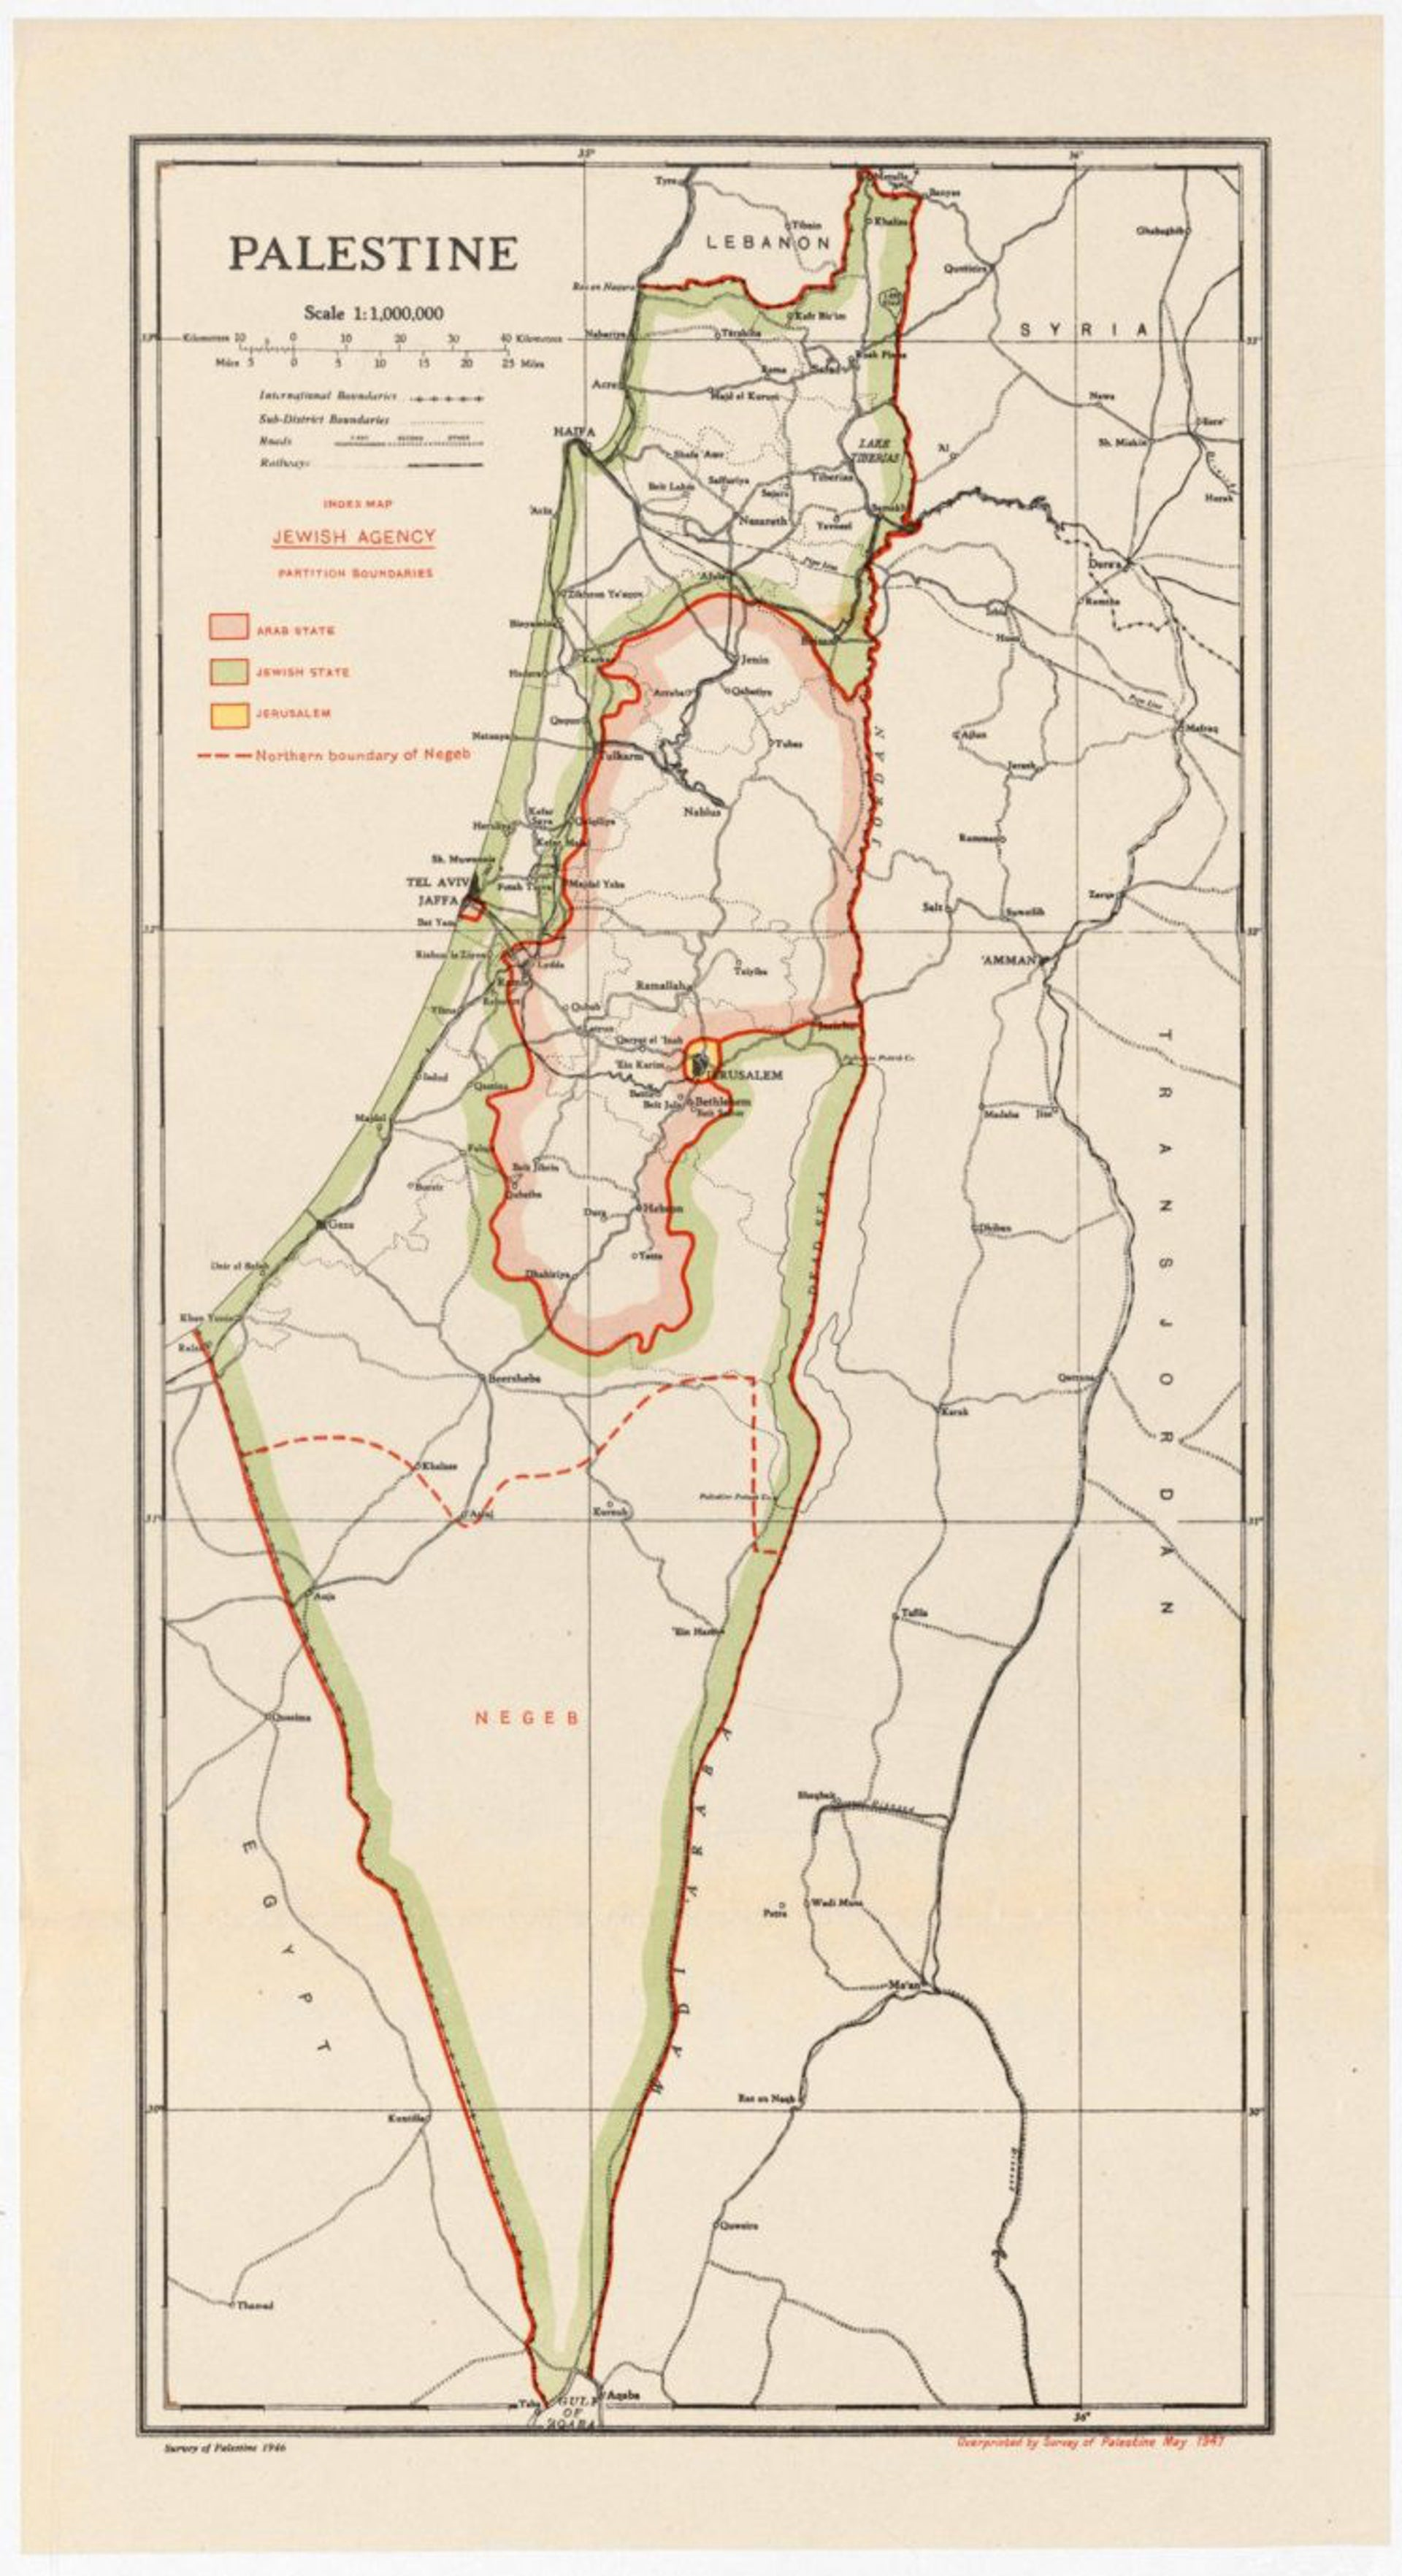 David Ben-Gurion partition map from 1947.